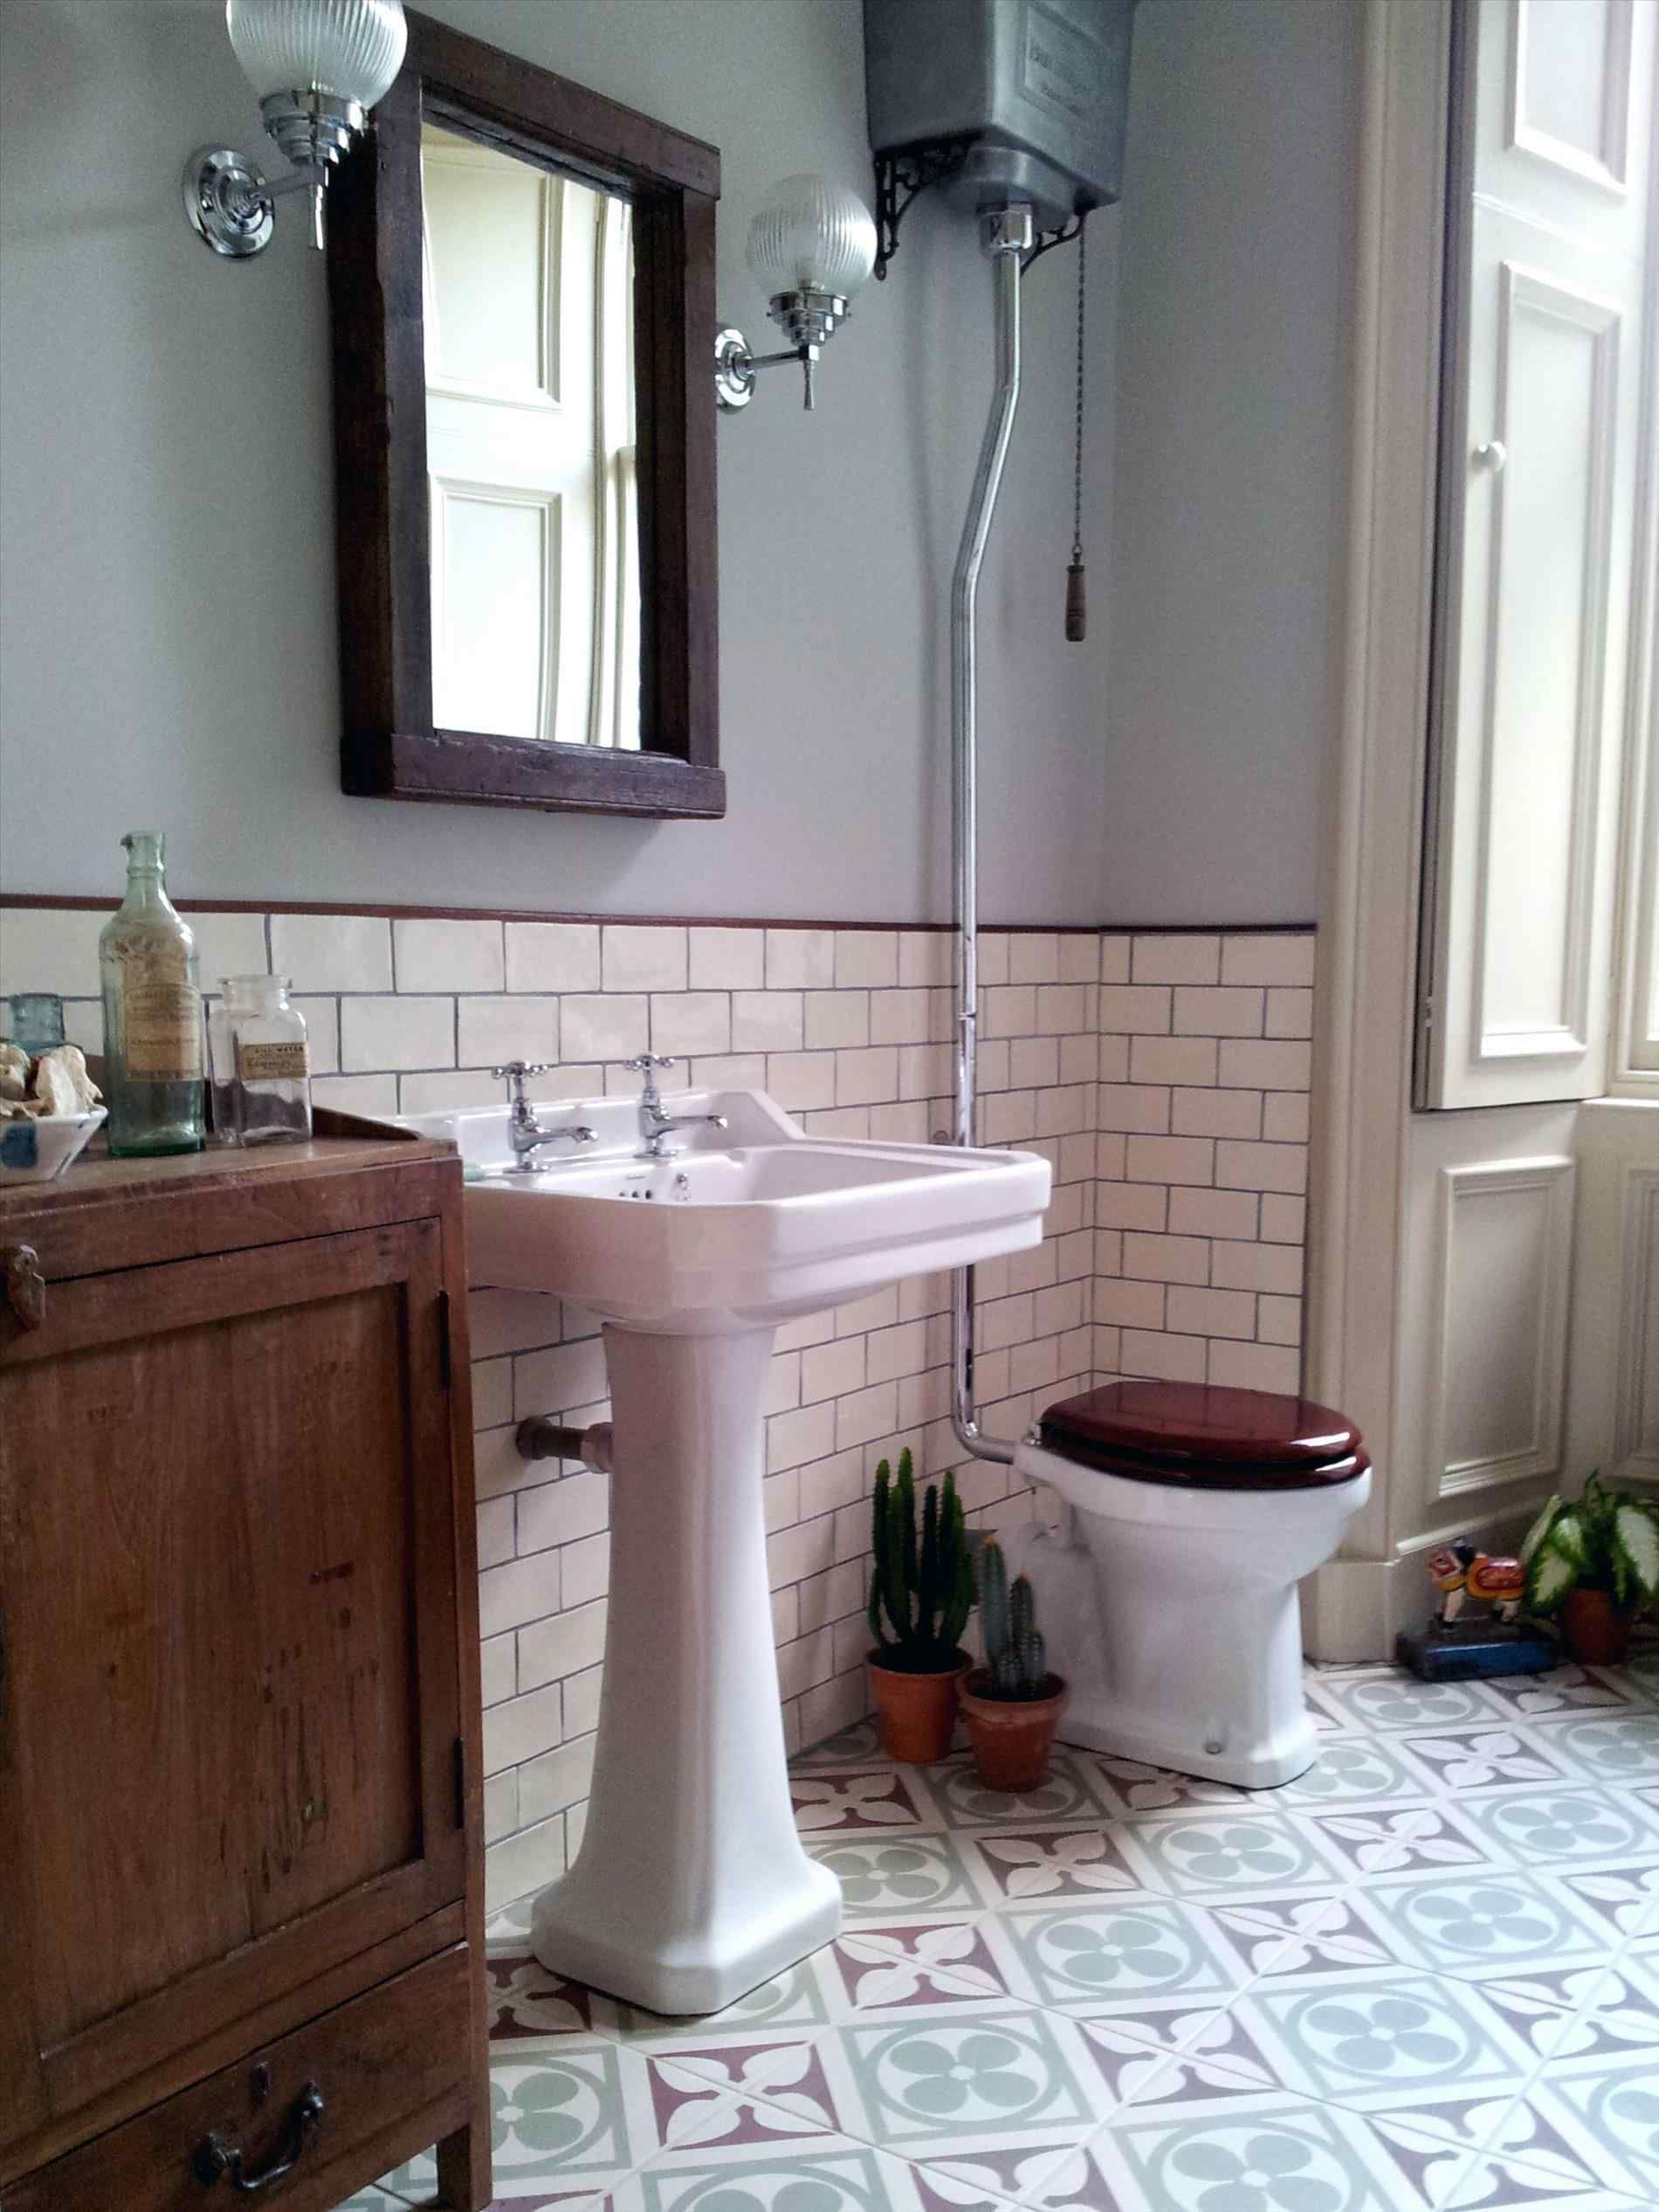 8 Ways To Create A Victorian Bathroom With Tiles School Of Tile